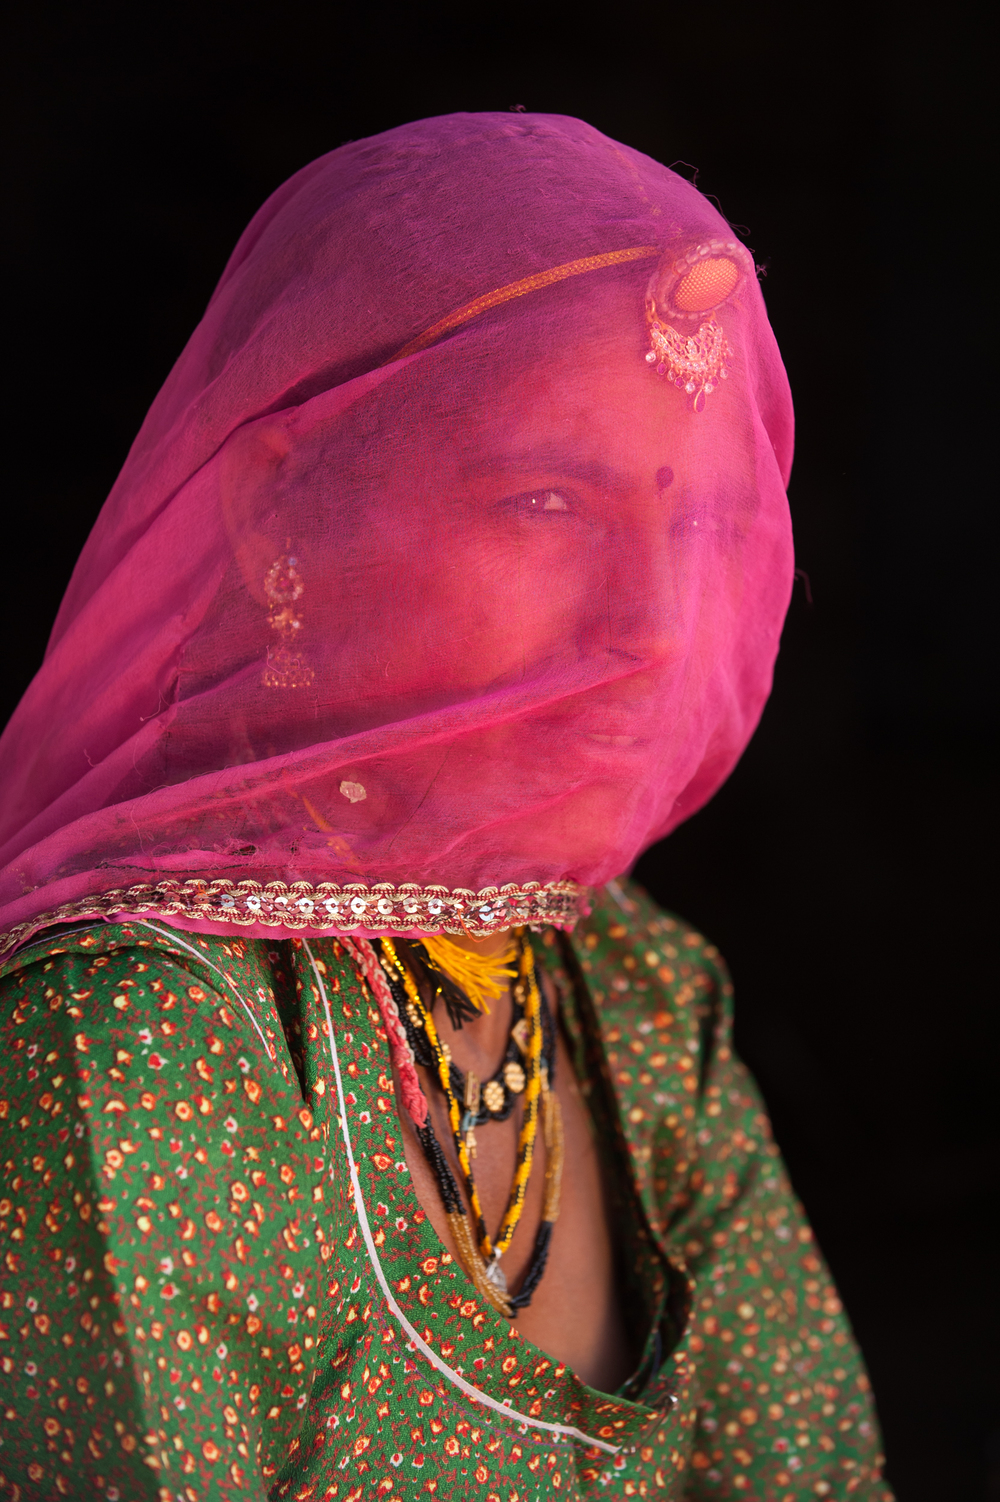 India A Rajasthani woman wearing traditional jewellery and a veil called a Ghoonghat